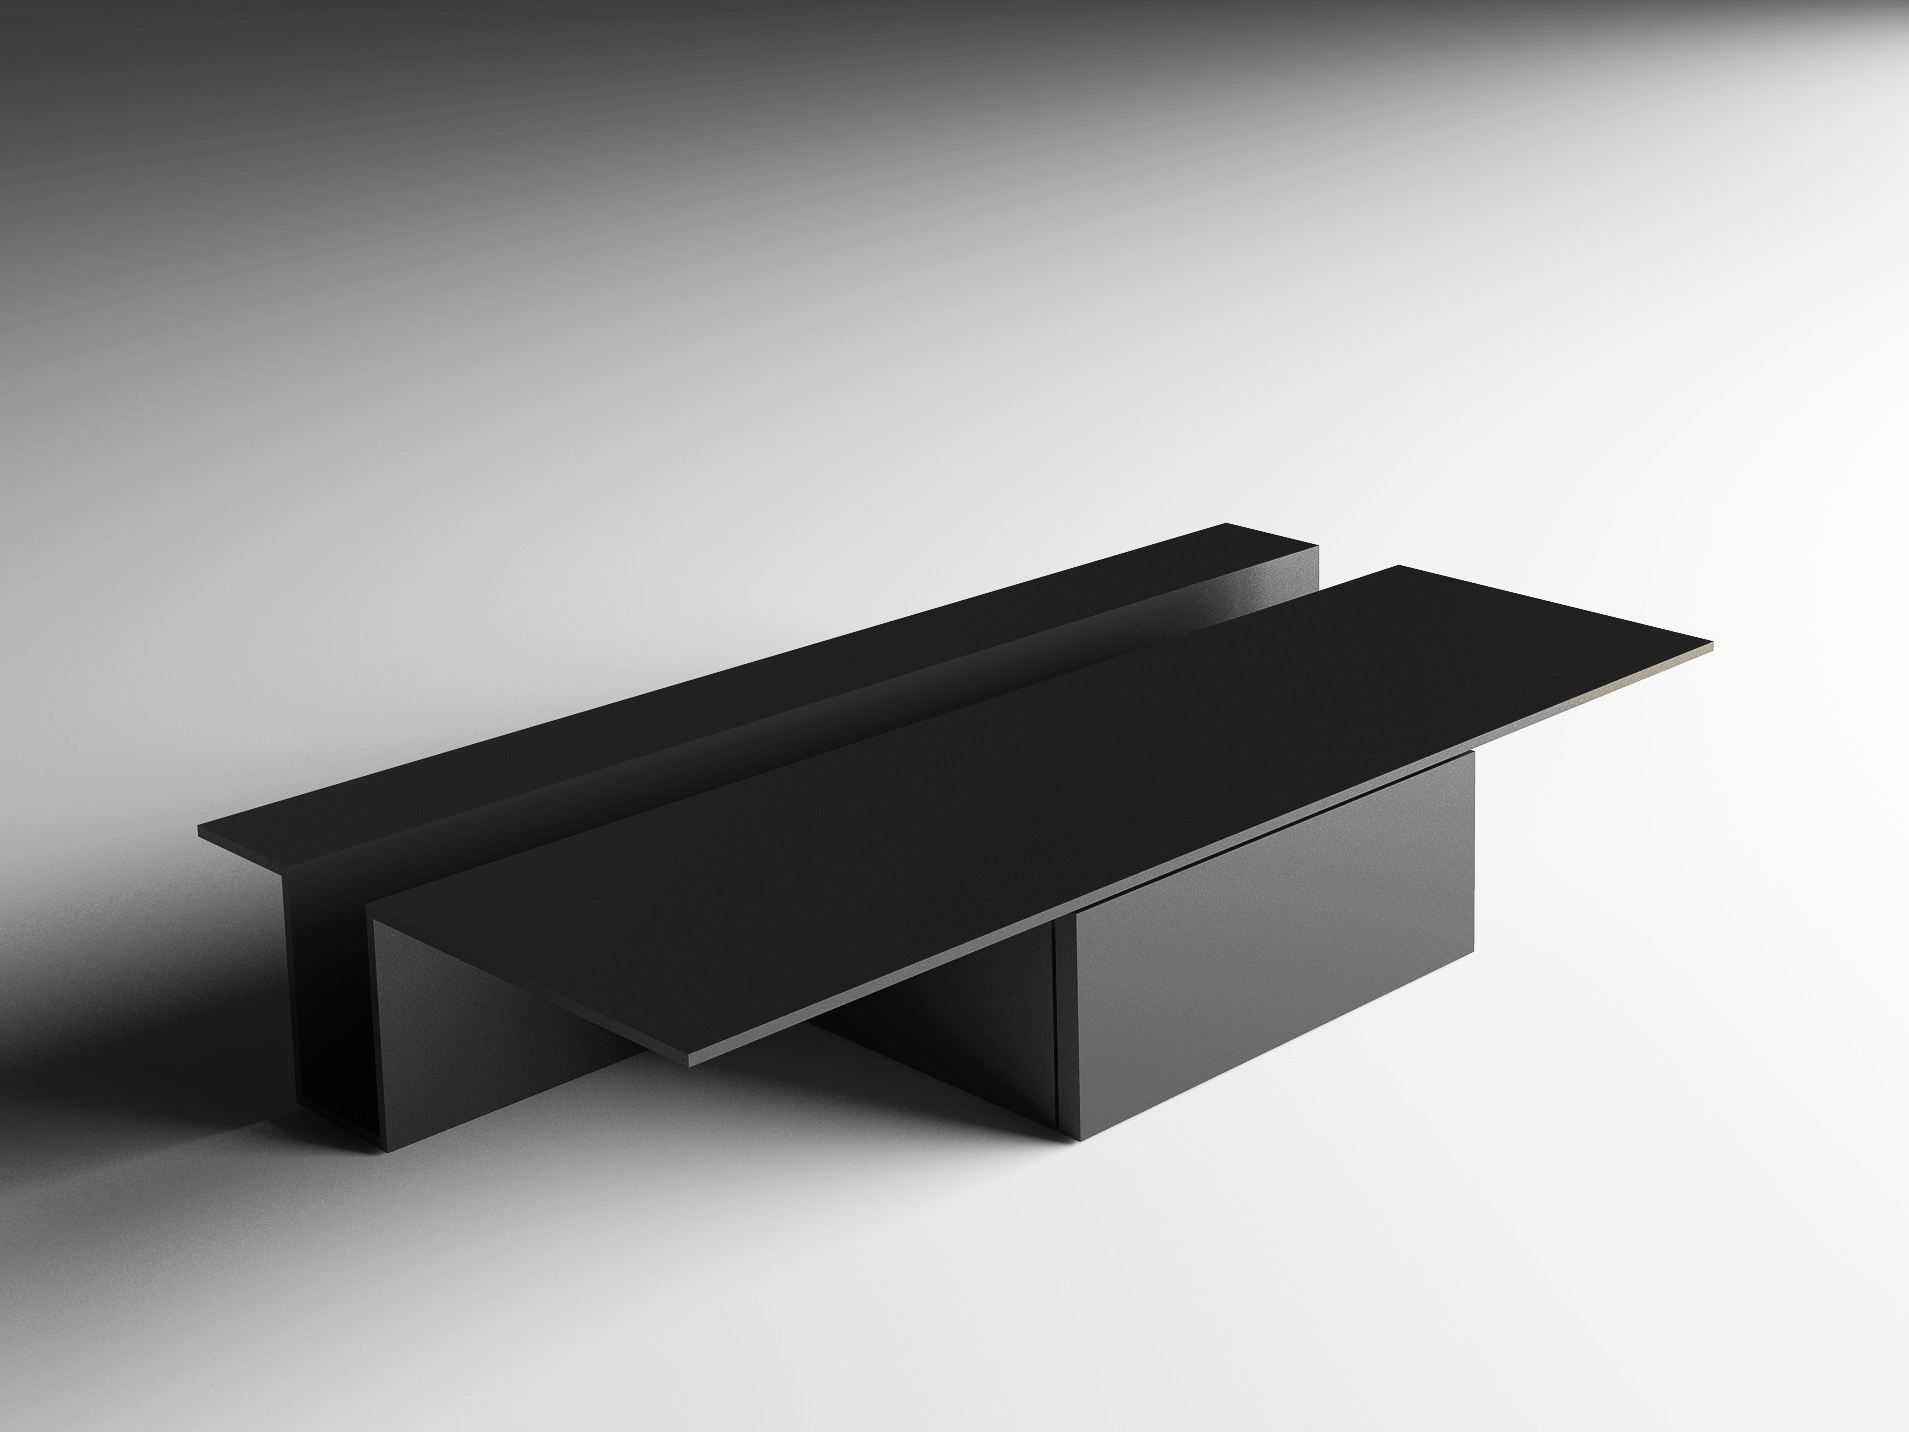 Low rectangular coffee table grek by living divani design buratti low rectangular coffee table grek by living divani design buratti architetti geotapseo Choice Image